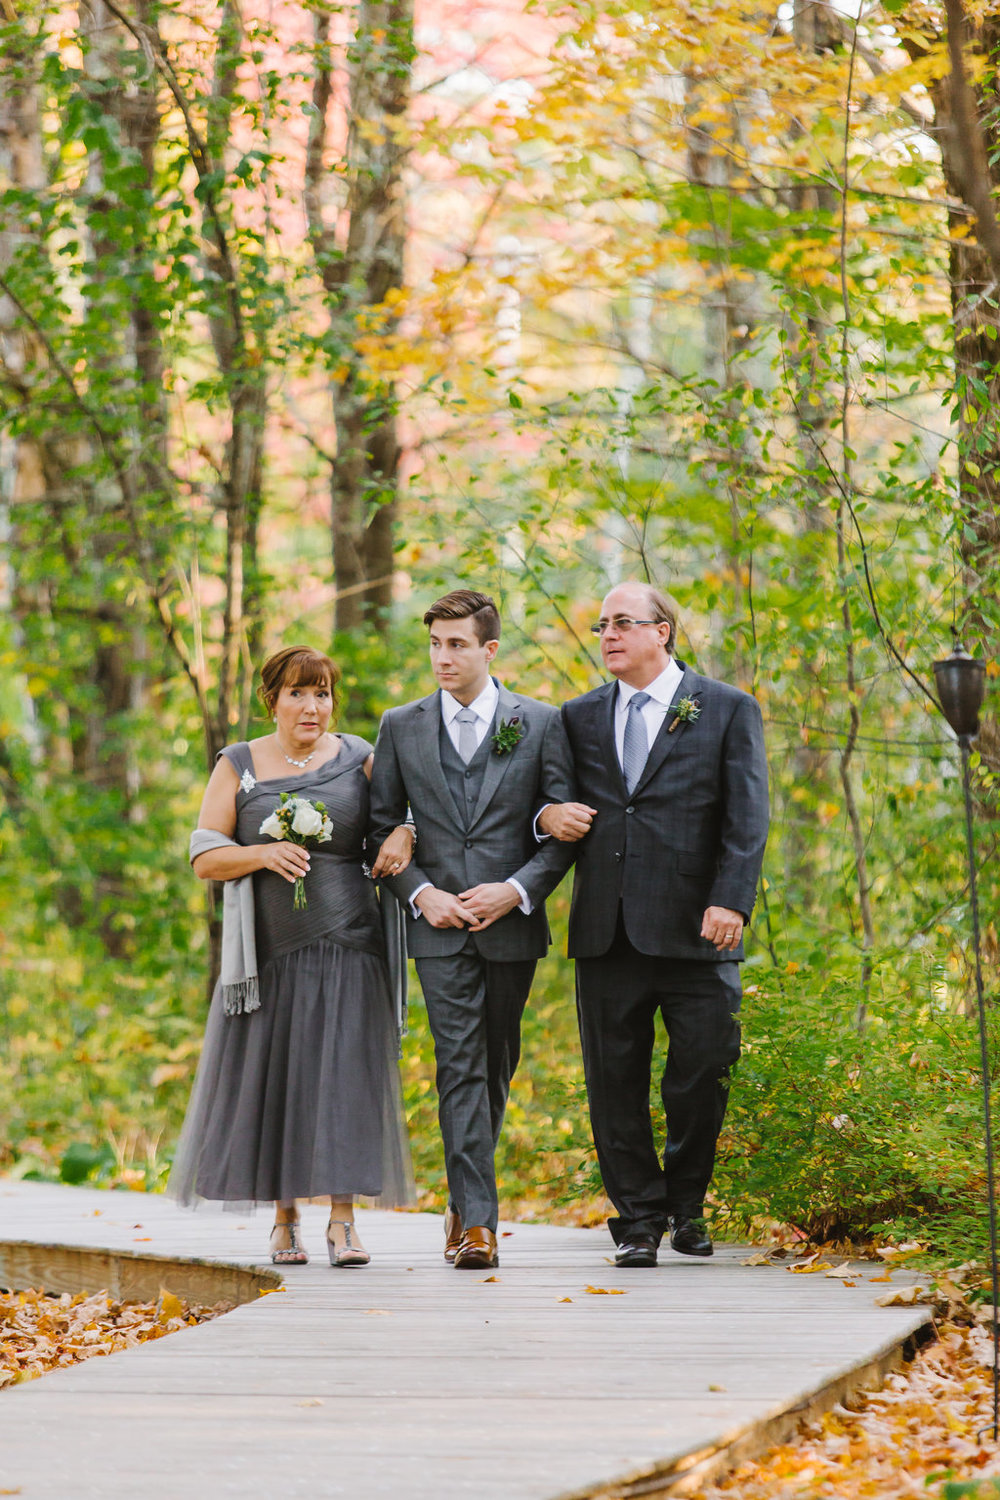 Alex+CoreyWedding-EmilyTebbettsPhotography--338.jpg